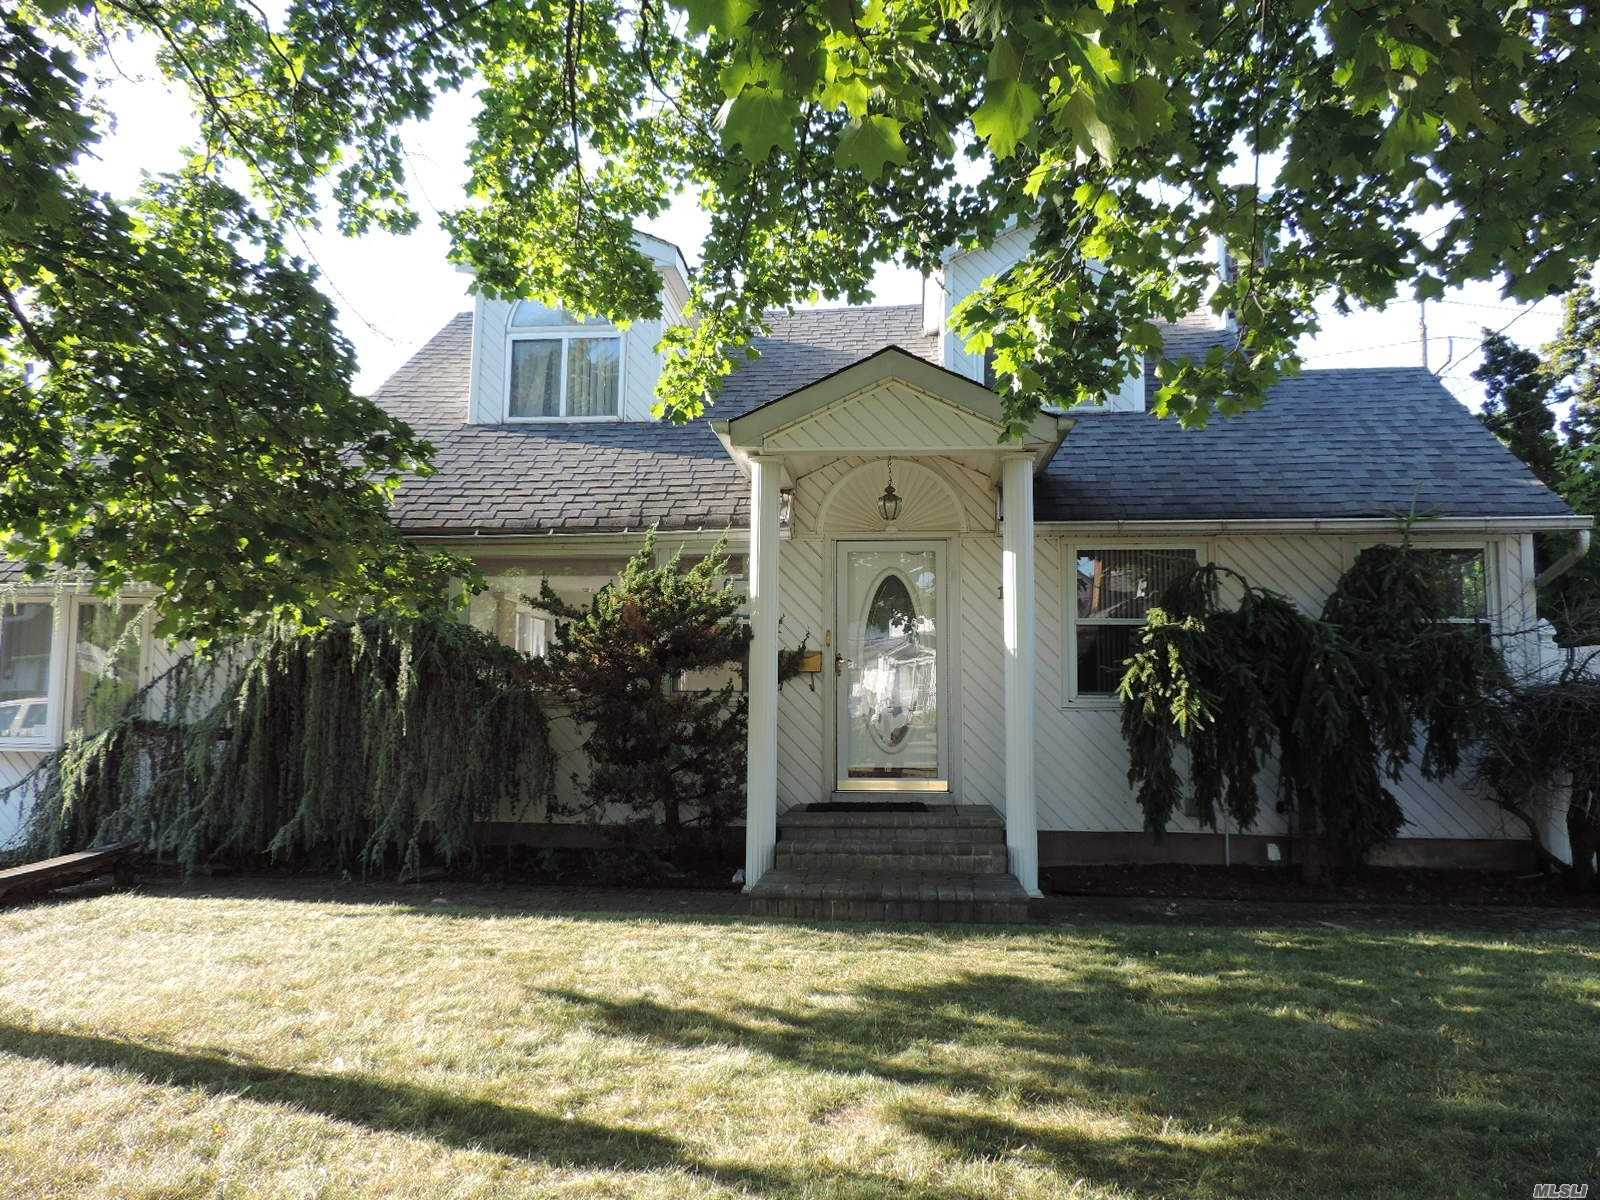 Excellent Opportunity To Add Some Tlc To This Expended Cape That Already Has High Ceilings, An Open Floor Plan, And A Full Basement. Do Not Miss The Chance To Own Or Invest In East Northport!!